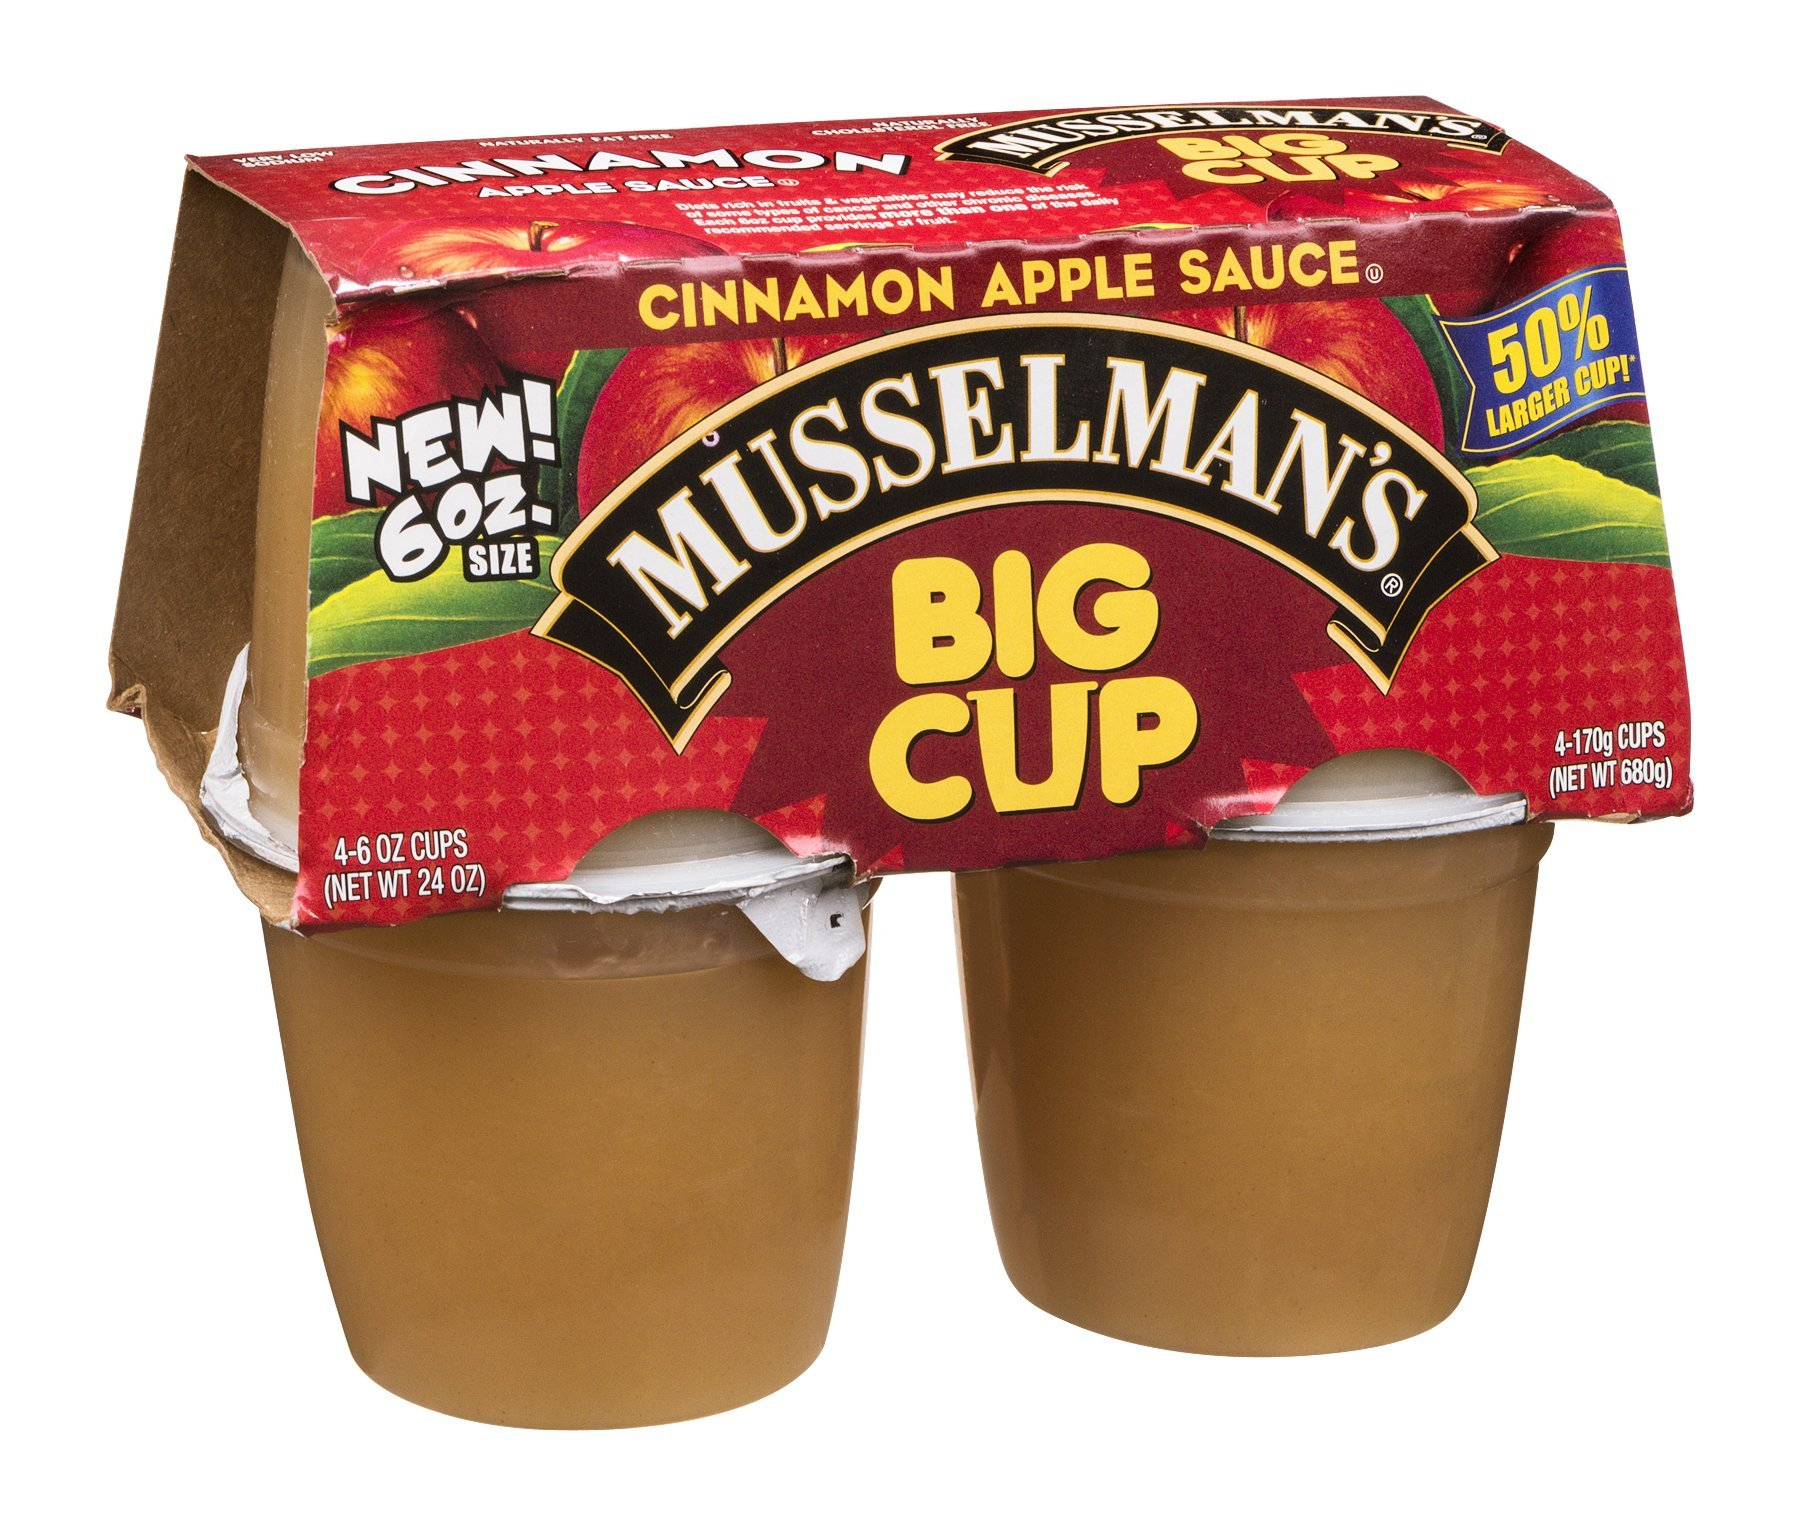 Musselman's Apple Sauce Big Cup Cinnamon 24 OZ (Pack of 24) by Musselmans